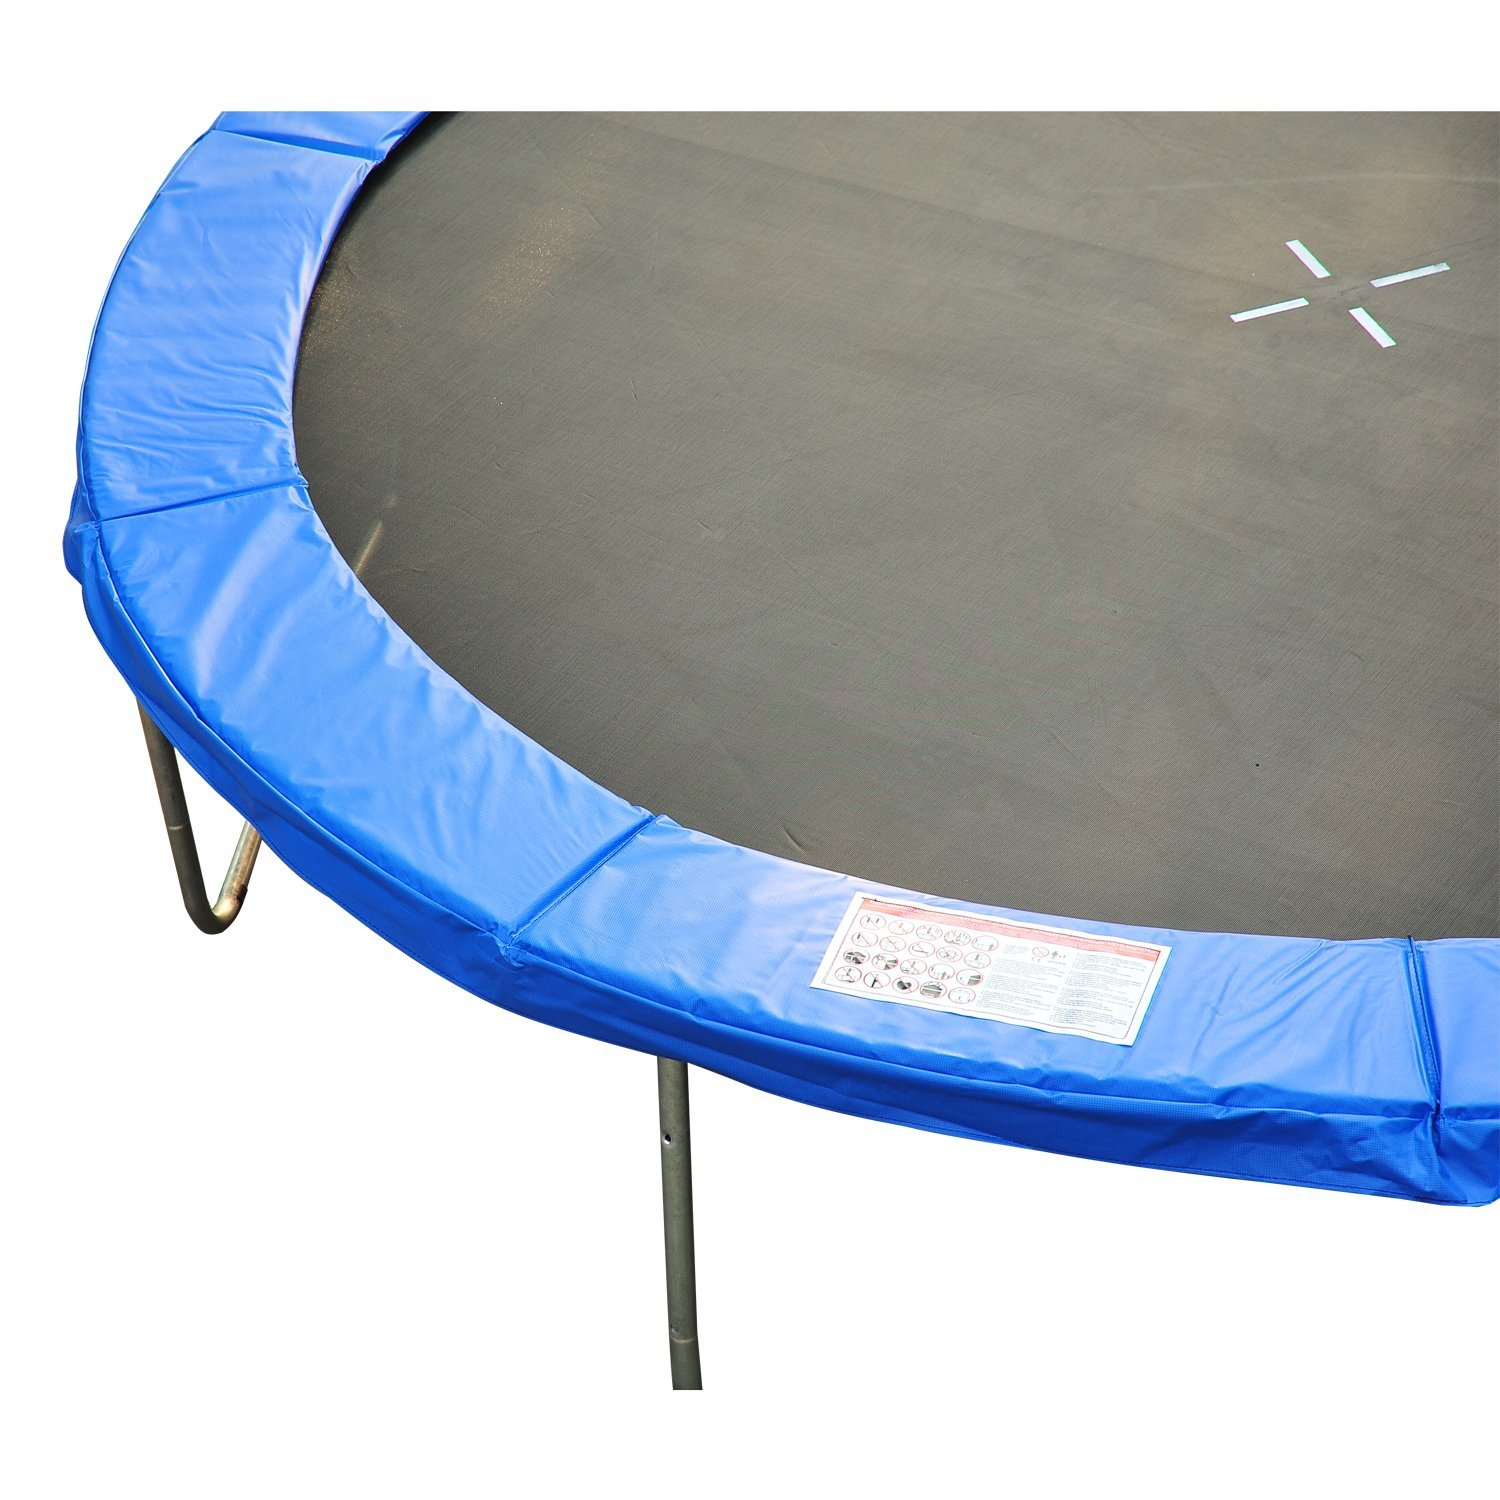 8ft-Trampoline-Pad-Spring-Safety-Replacement-Gym-Bounce-Jump-Cover-EPE-Foam thumbnail 4